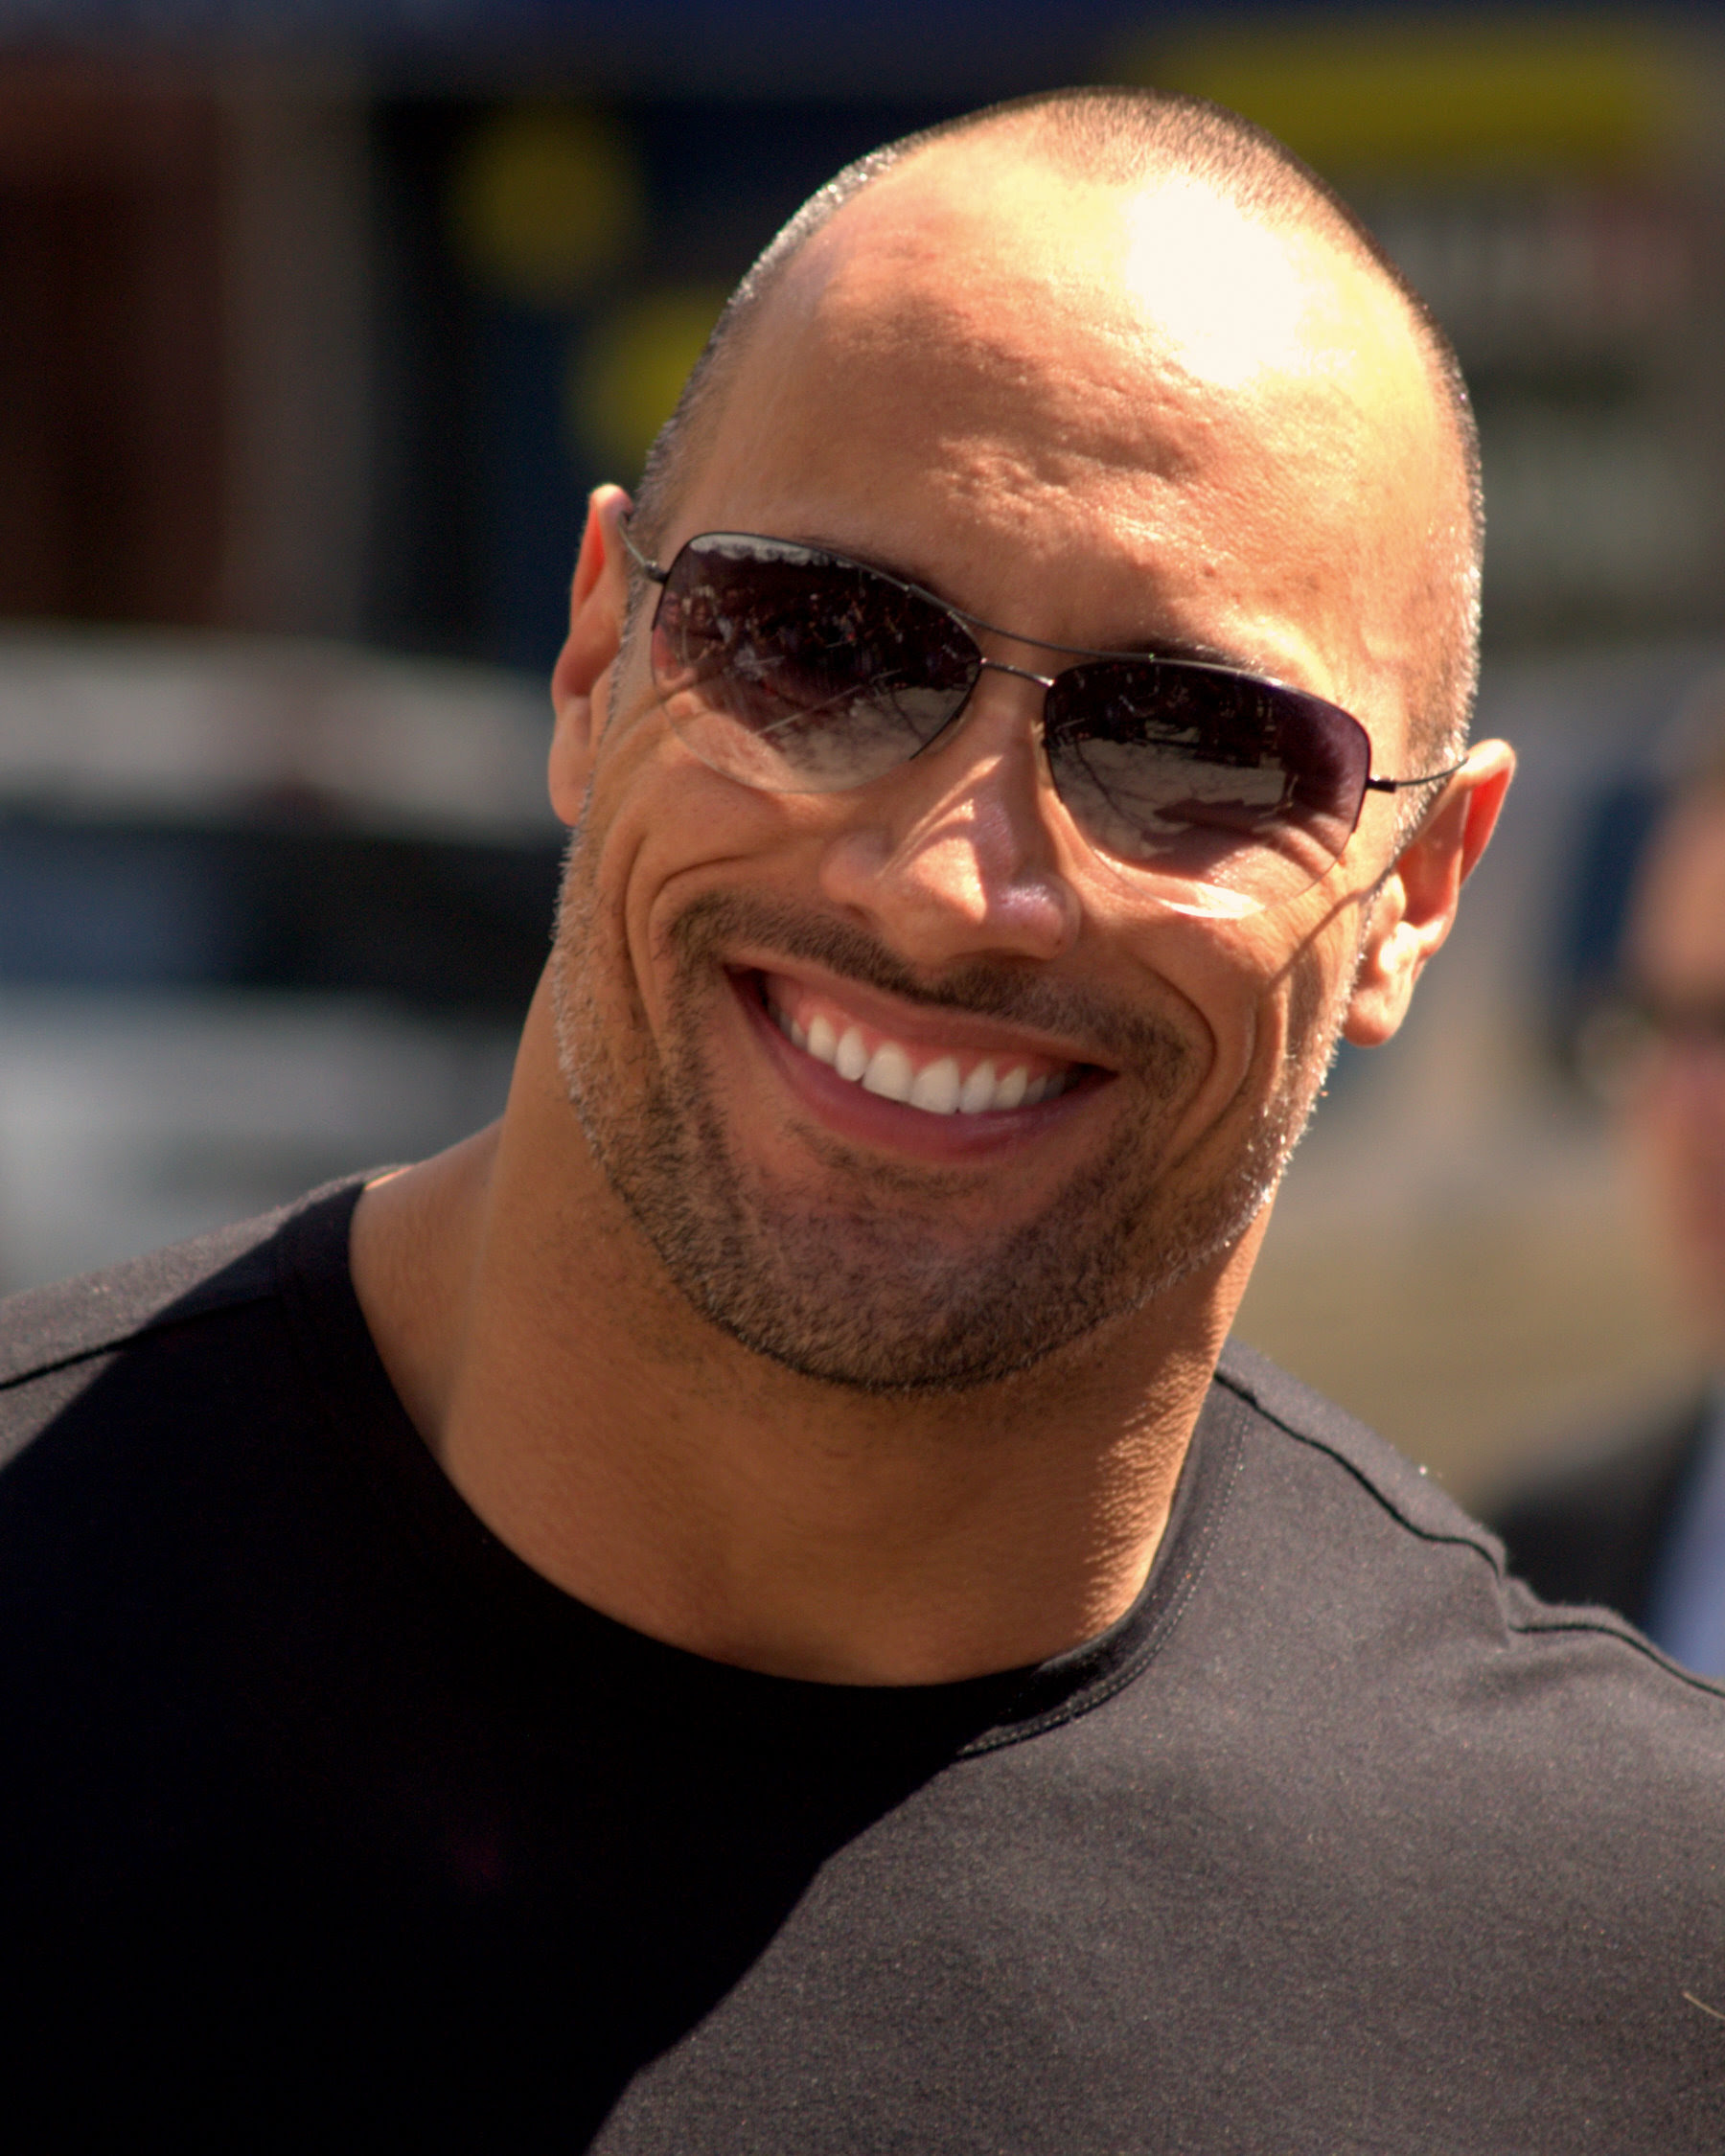 http://upload.wikimedia.org/wikipedia/commons/b/b8/Dwayne_The_Rock_Johnson_2009_Tribeca_portrait.jpg